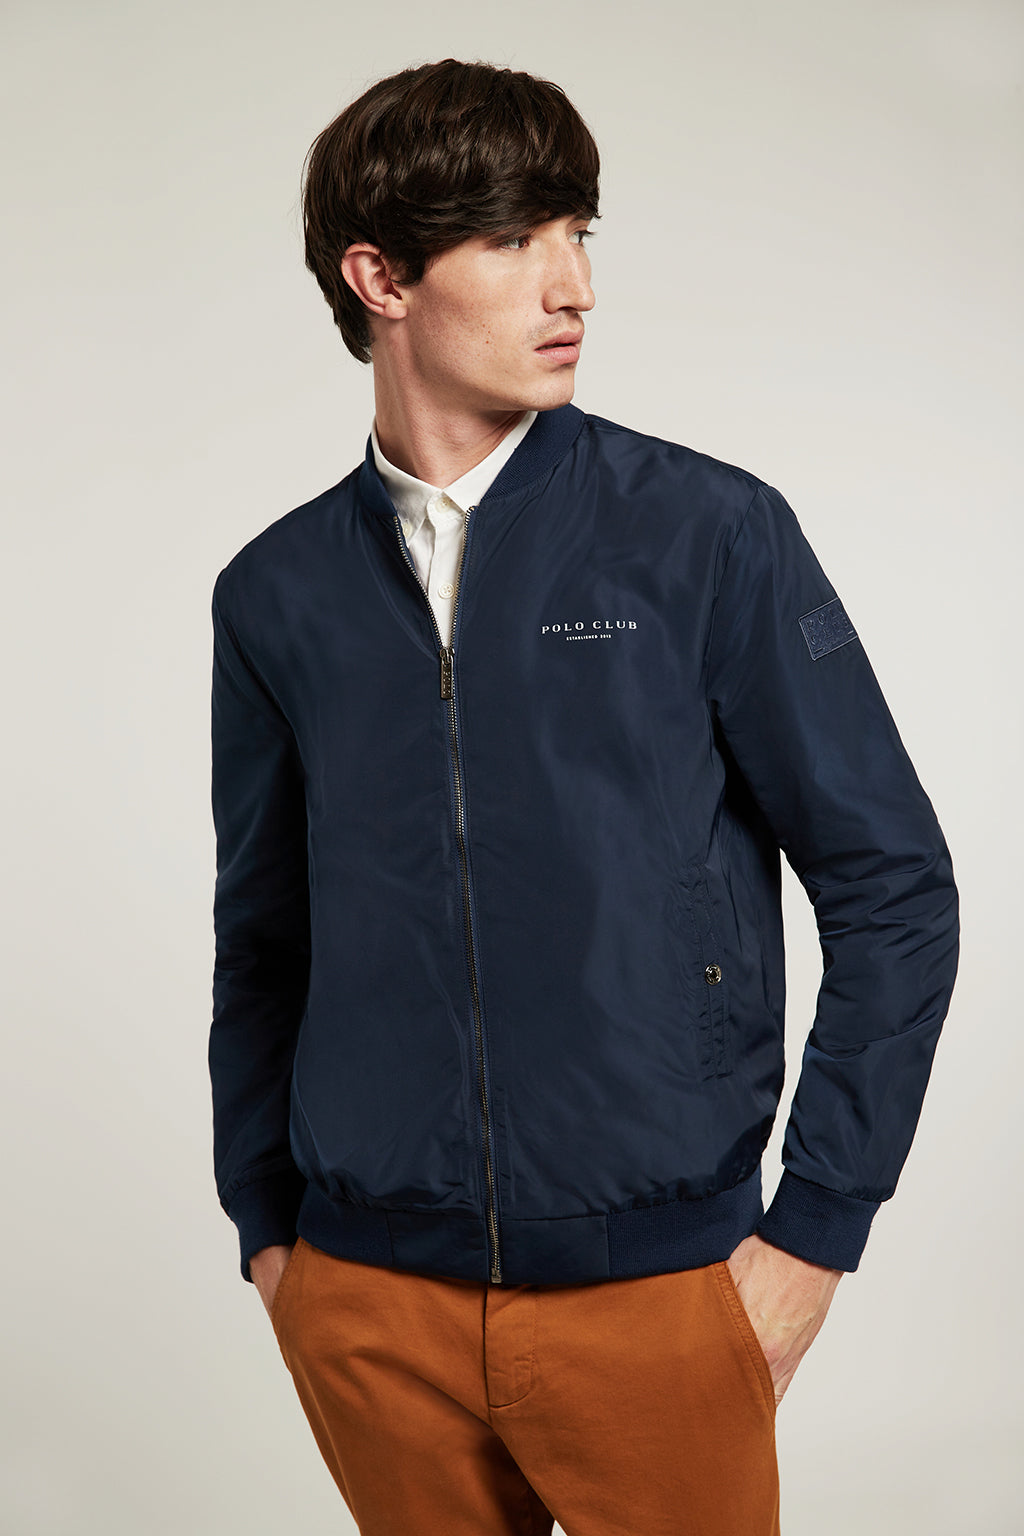 Waterproof navy blue bomber jacket